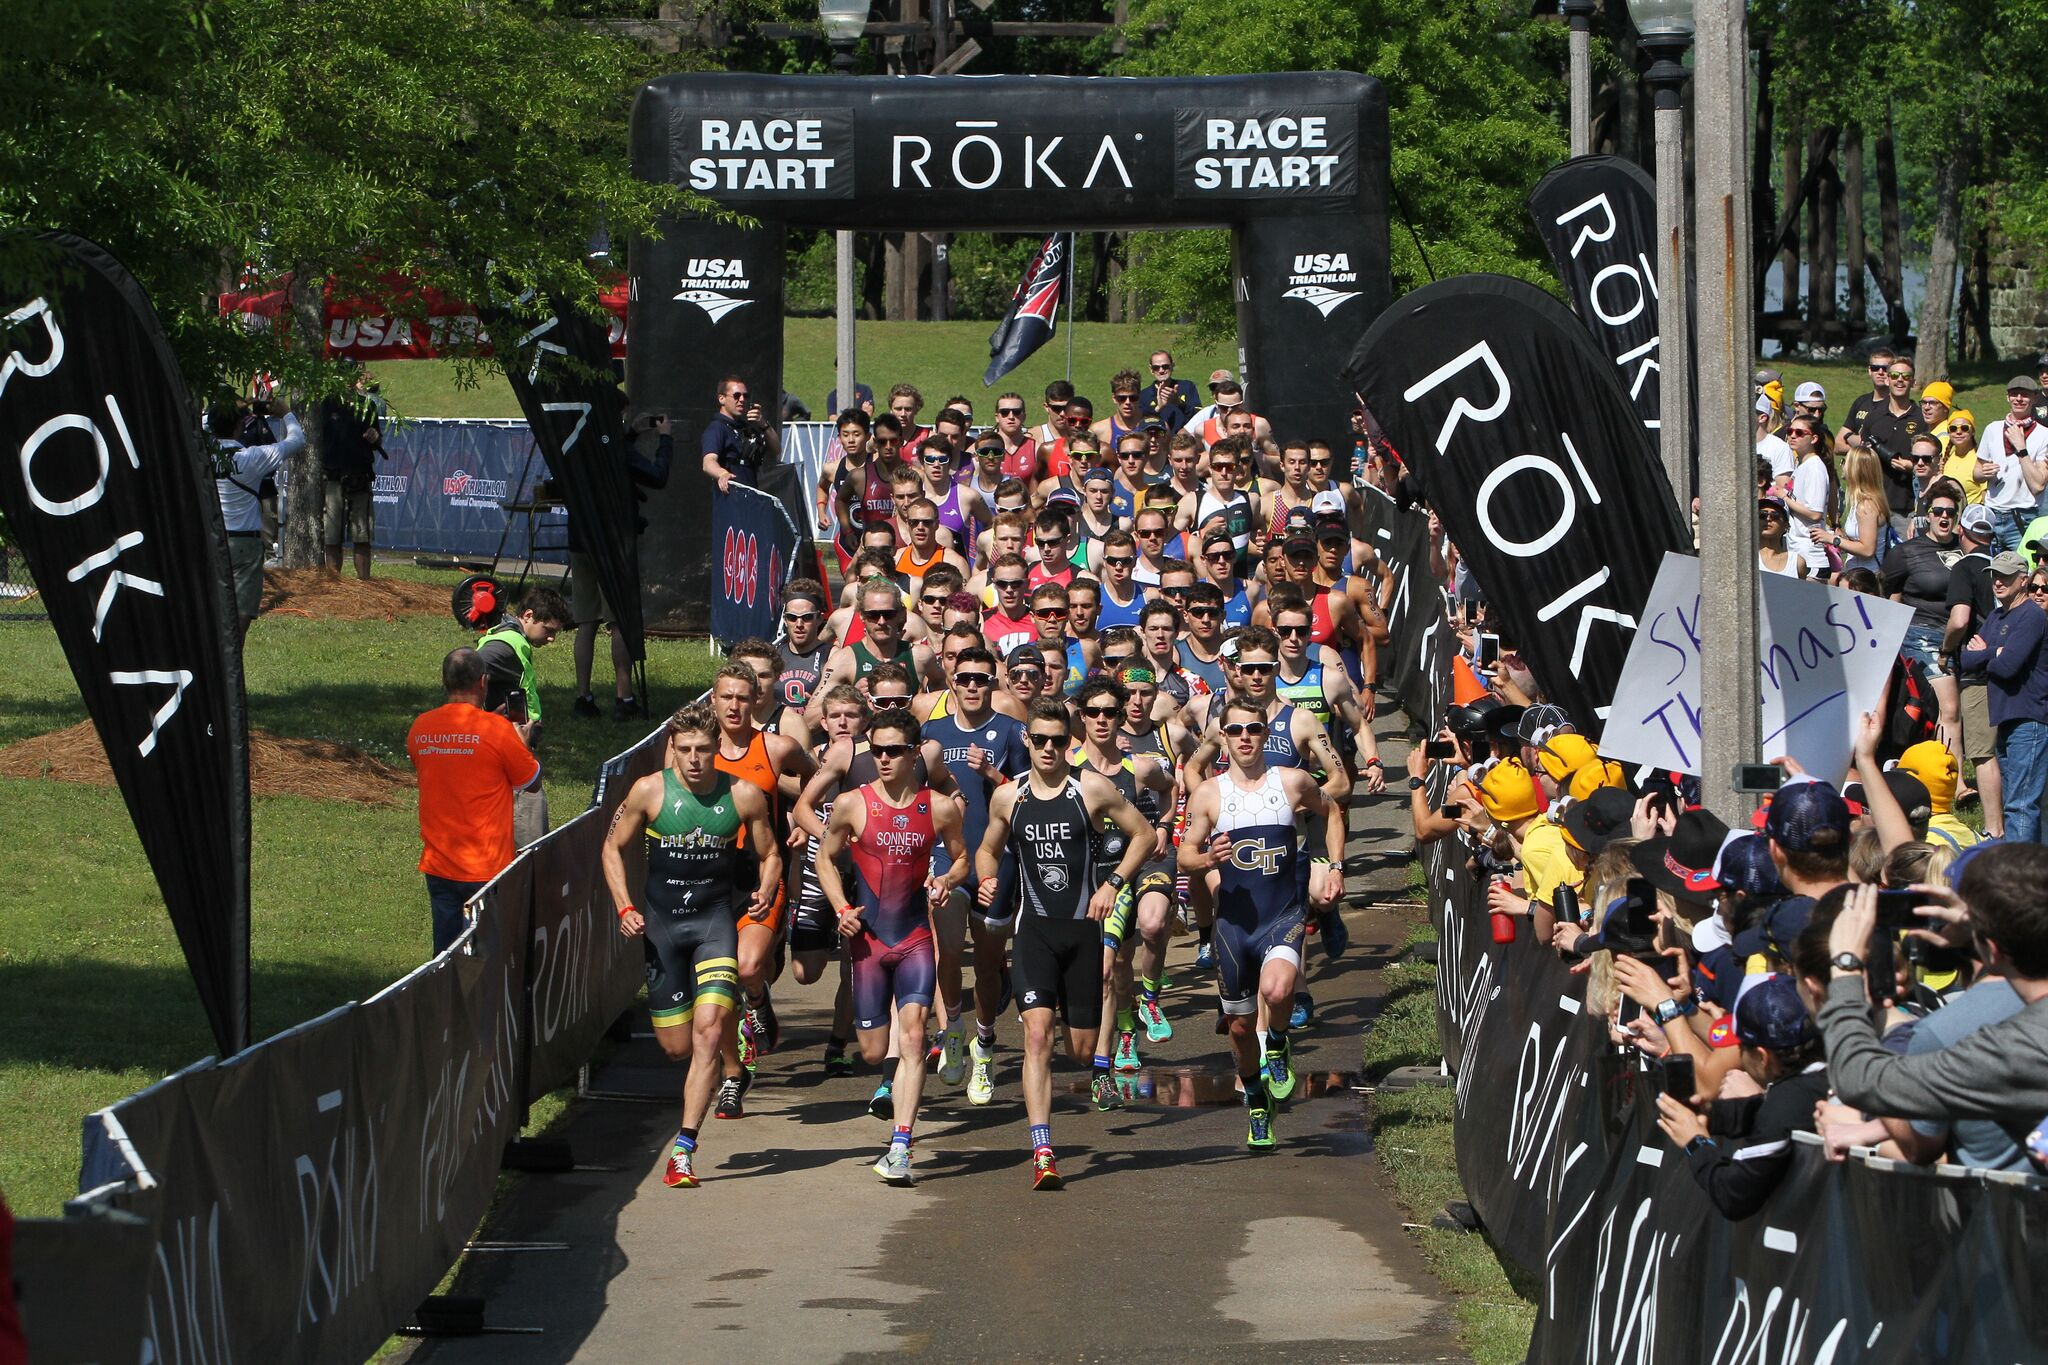 CONNECT SPORTS – USA TRIATHLON ROCKS TUSCALOOSA